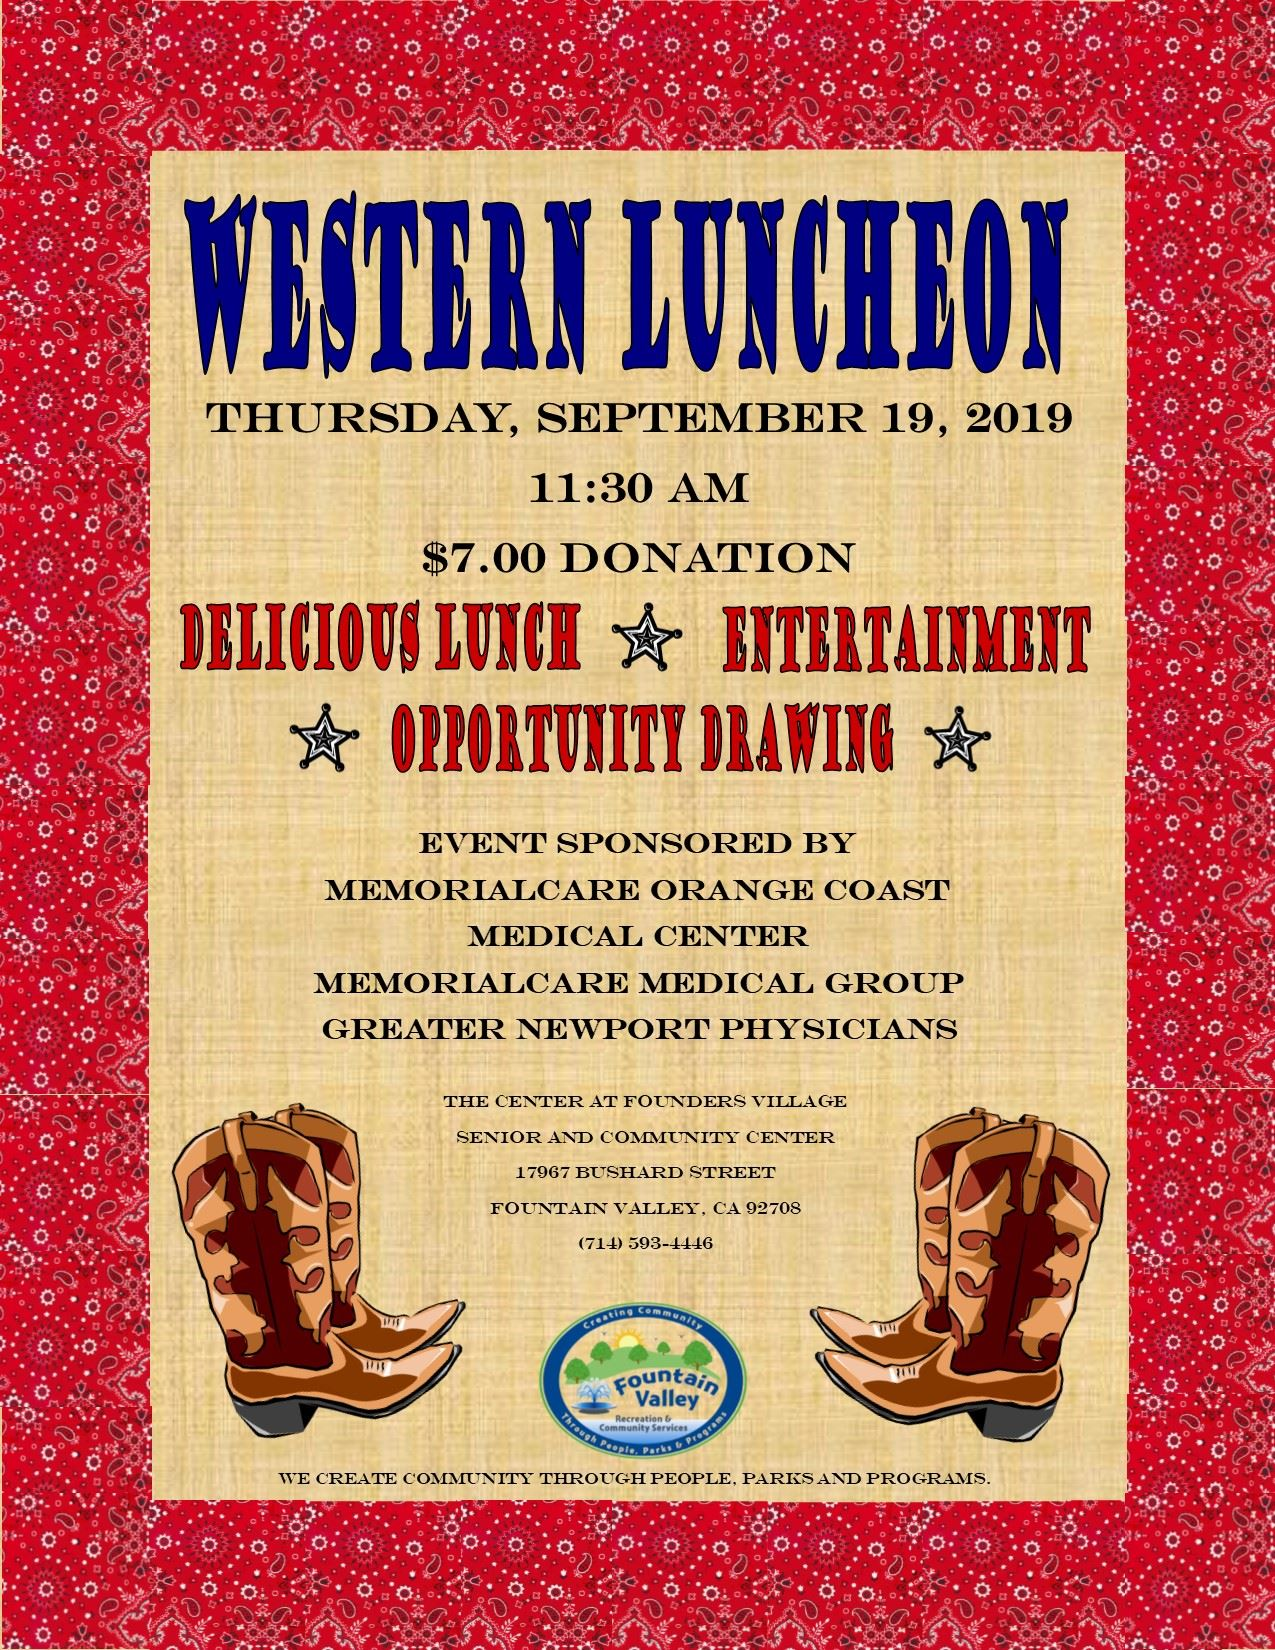 Western Luncheon Flyer